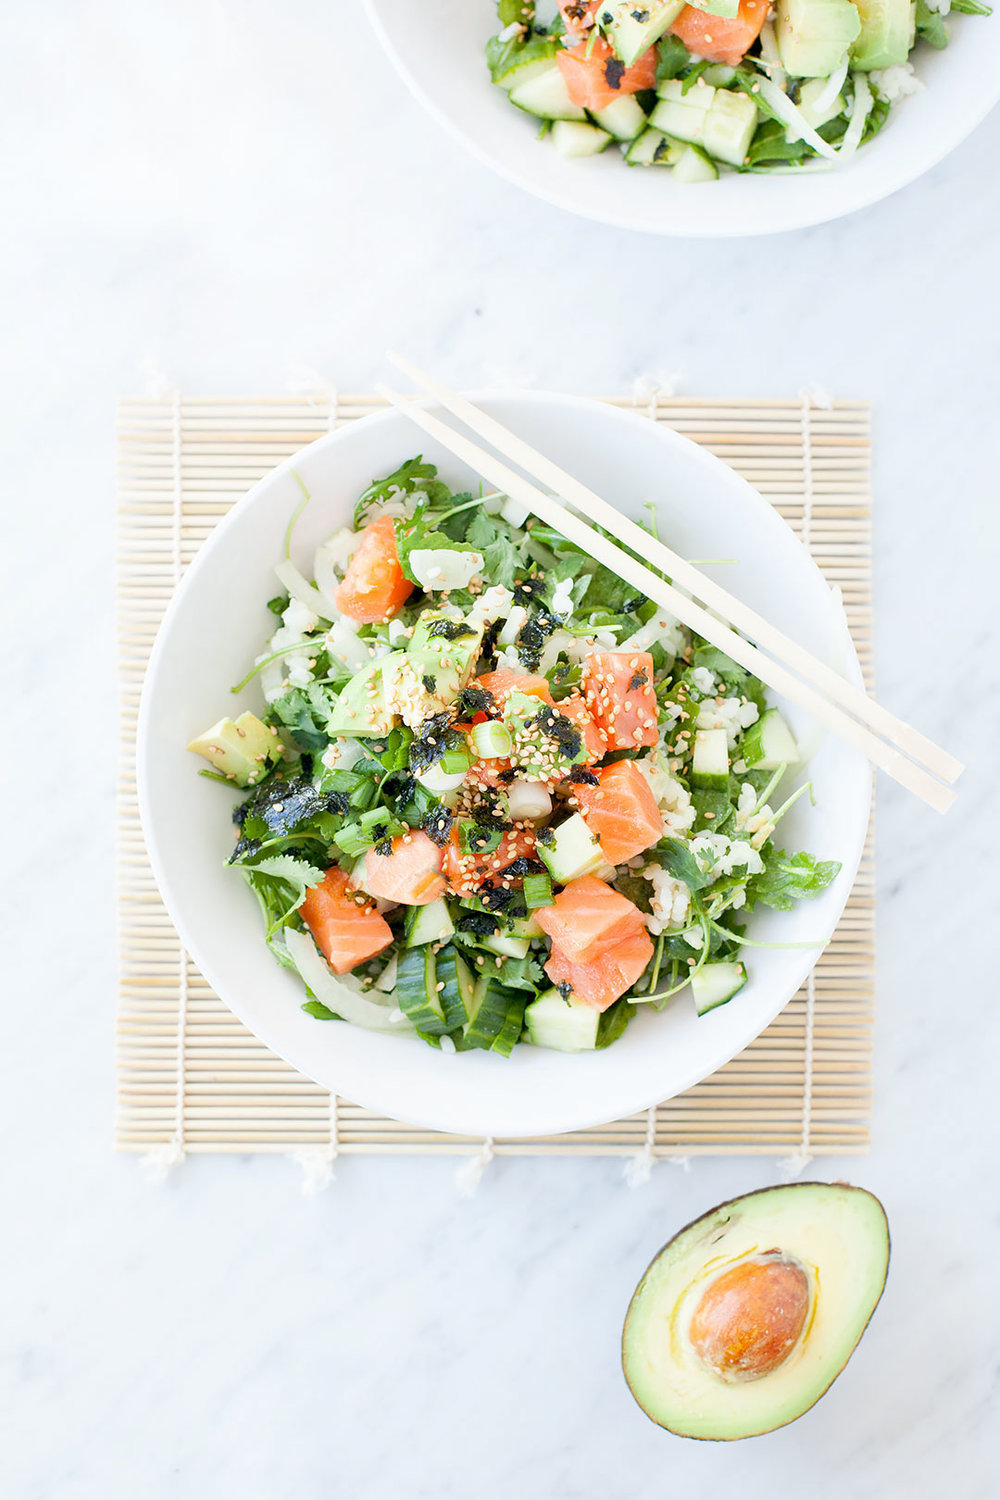 EASY SALMON POKE BOWLS   A quick healthy weeknight meal full of flavor - like sushi in a bowl! Sushi-grade salmon mixed with baby arugula and quinoa. Topped with avocado, sesame seeds, and roasted nori. Dairy-free and gluten-free.   LOVELEAF CO. #weeknightmeal #sushi #poke #pokebowl #healthydinner #easyrecipe #salmon #avocado #dinnerrecipe